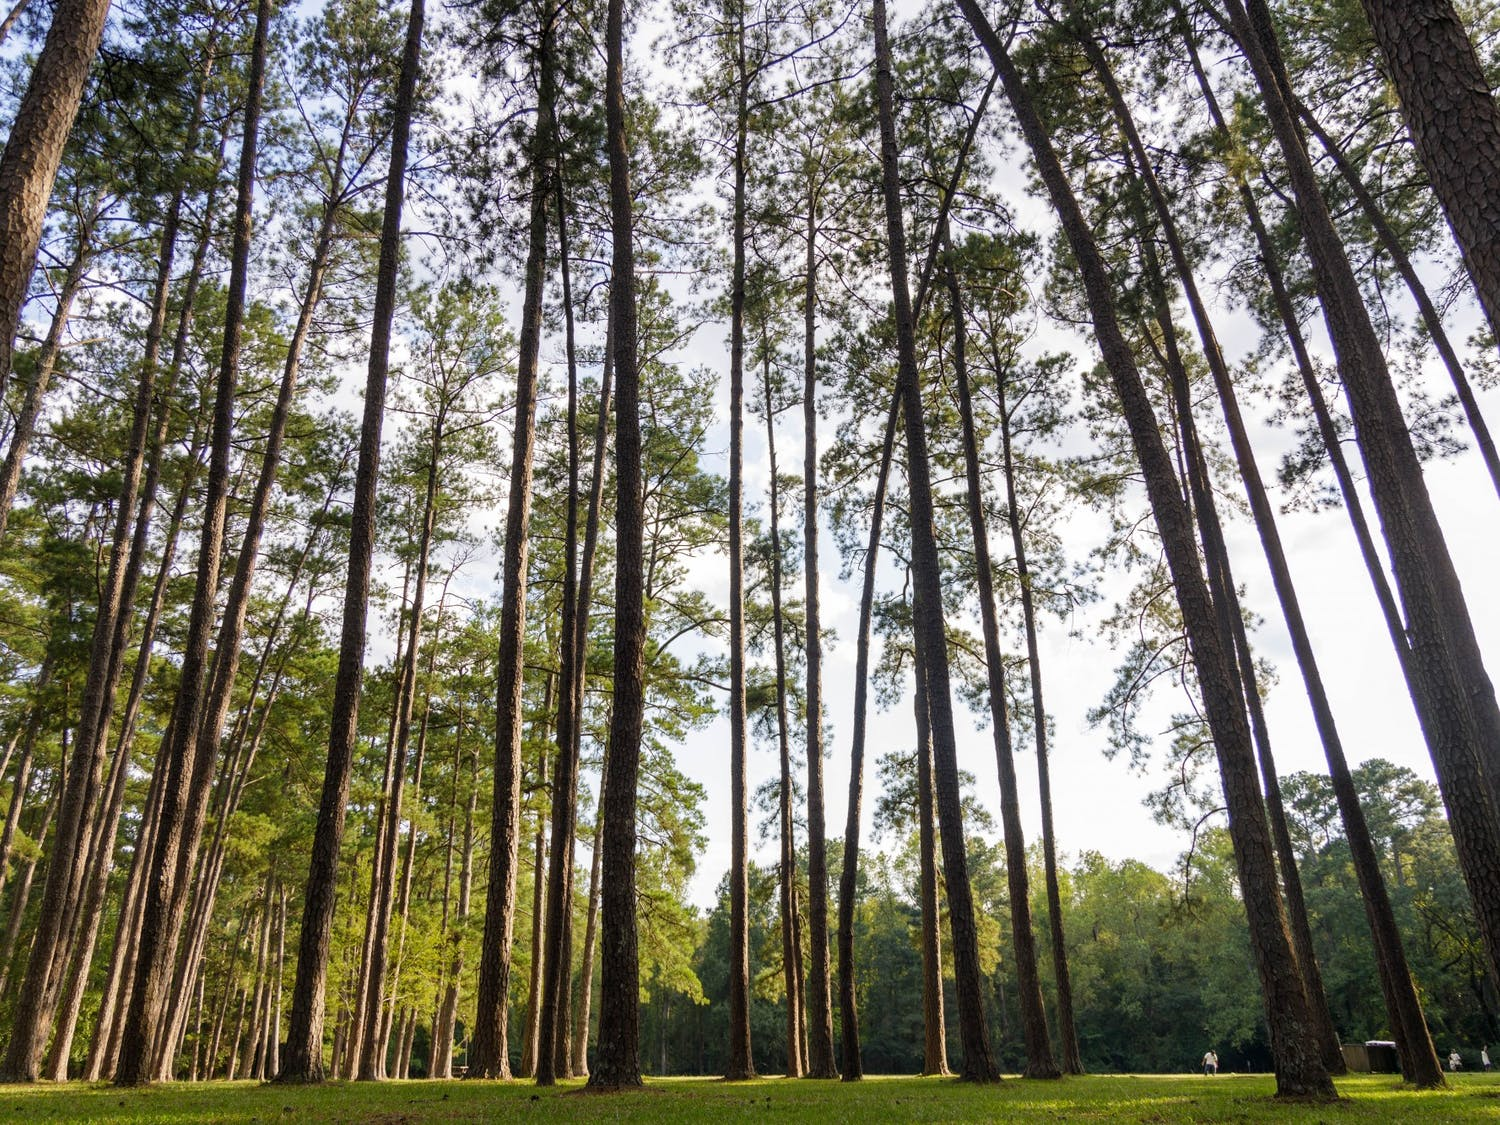 """A grove of trees at """"Sesqui,"""" or Sesquicentennial State Park. Sesquicentennial State Park was created by the Civilian Conservation Corps and has hiking trails, streams, a pond, camping sites, a dog park and plenty of forest and fields."""